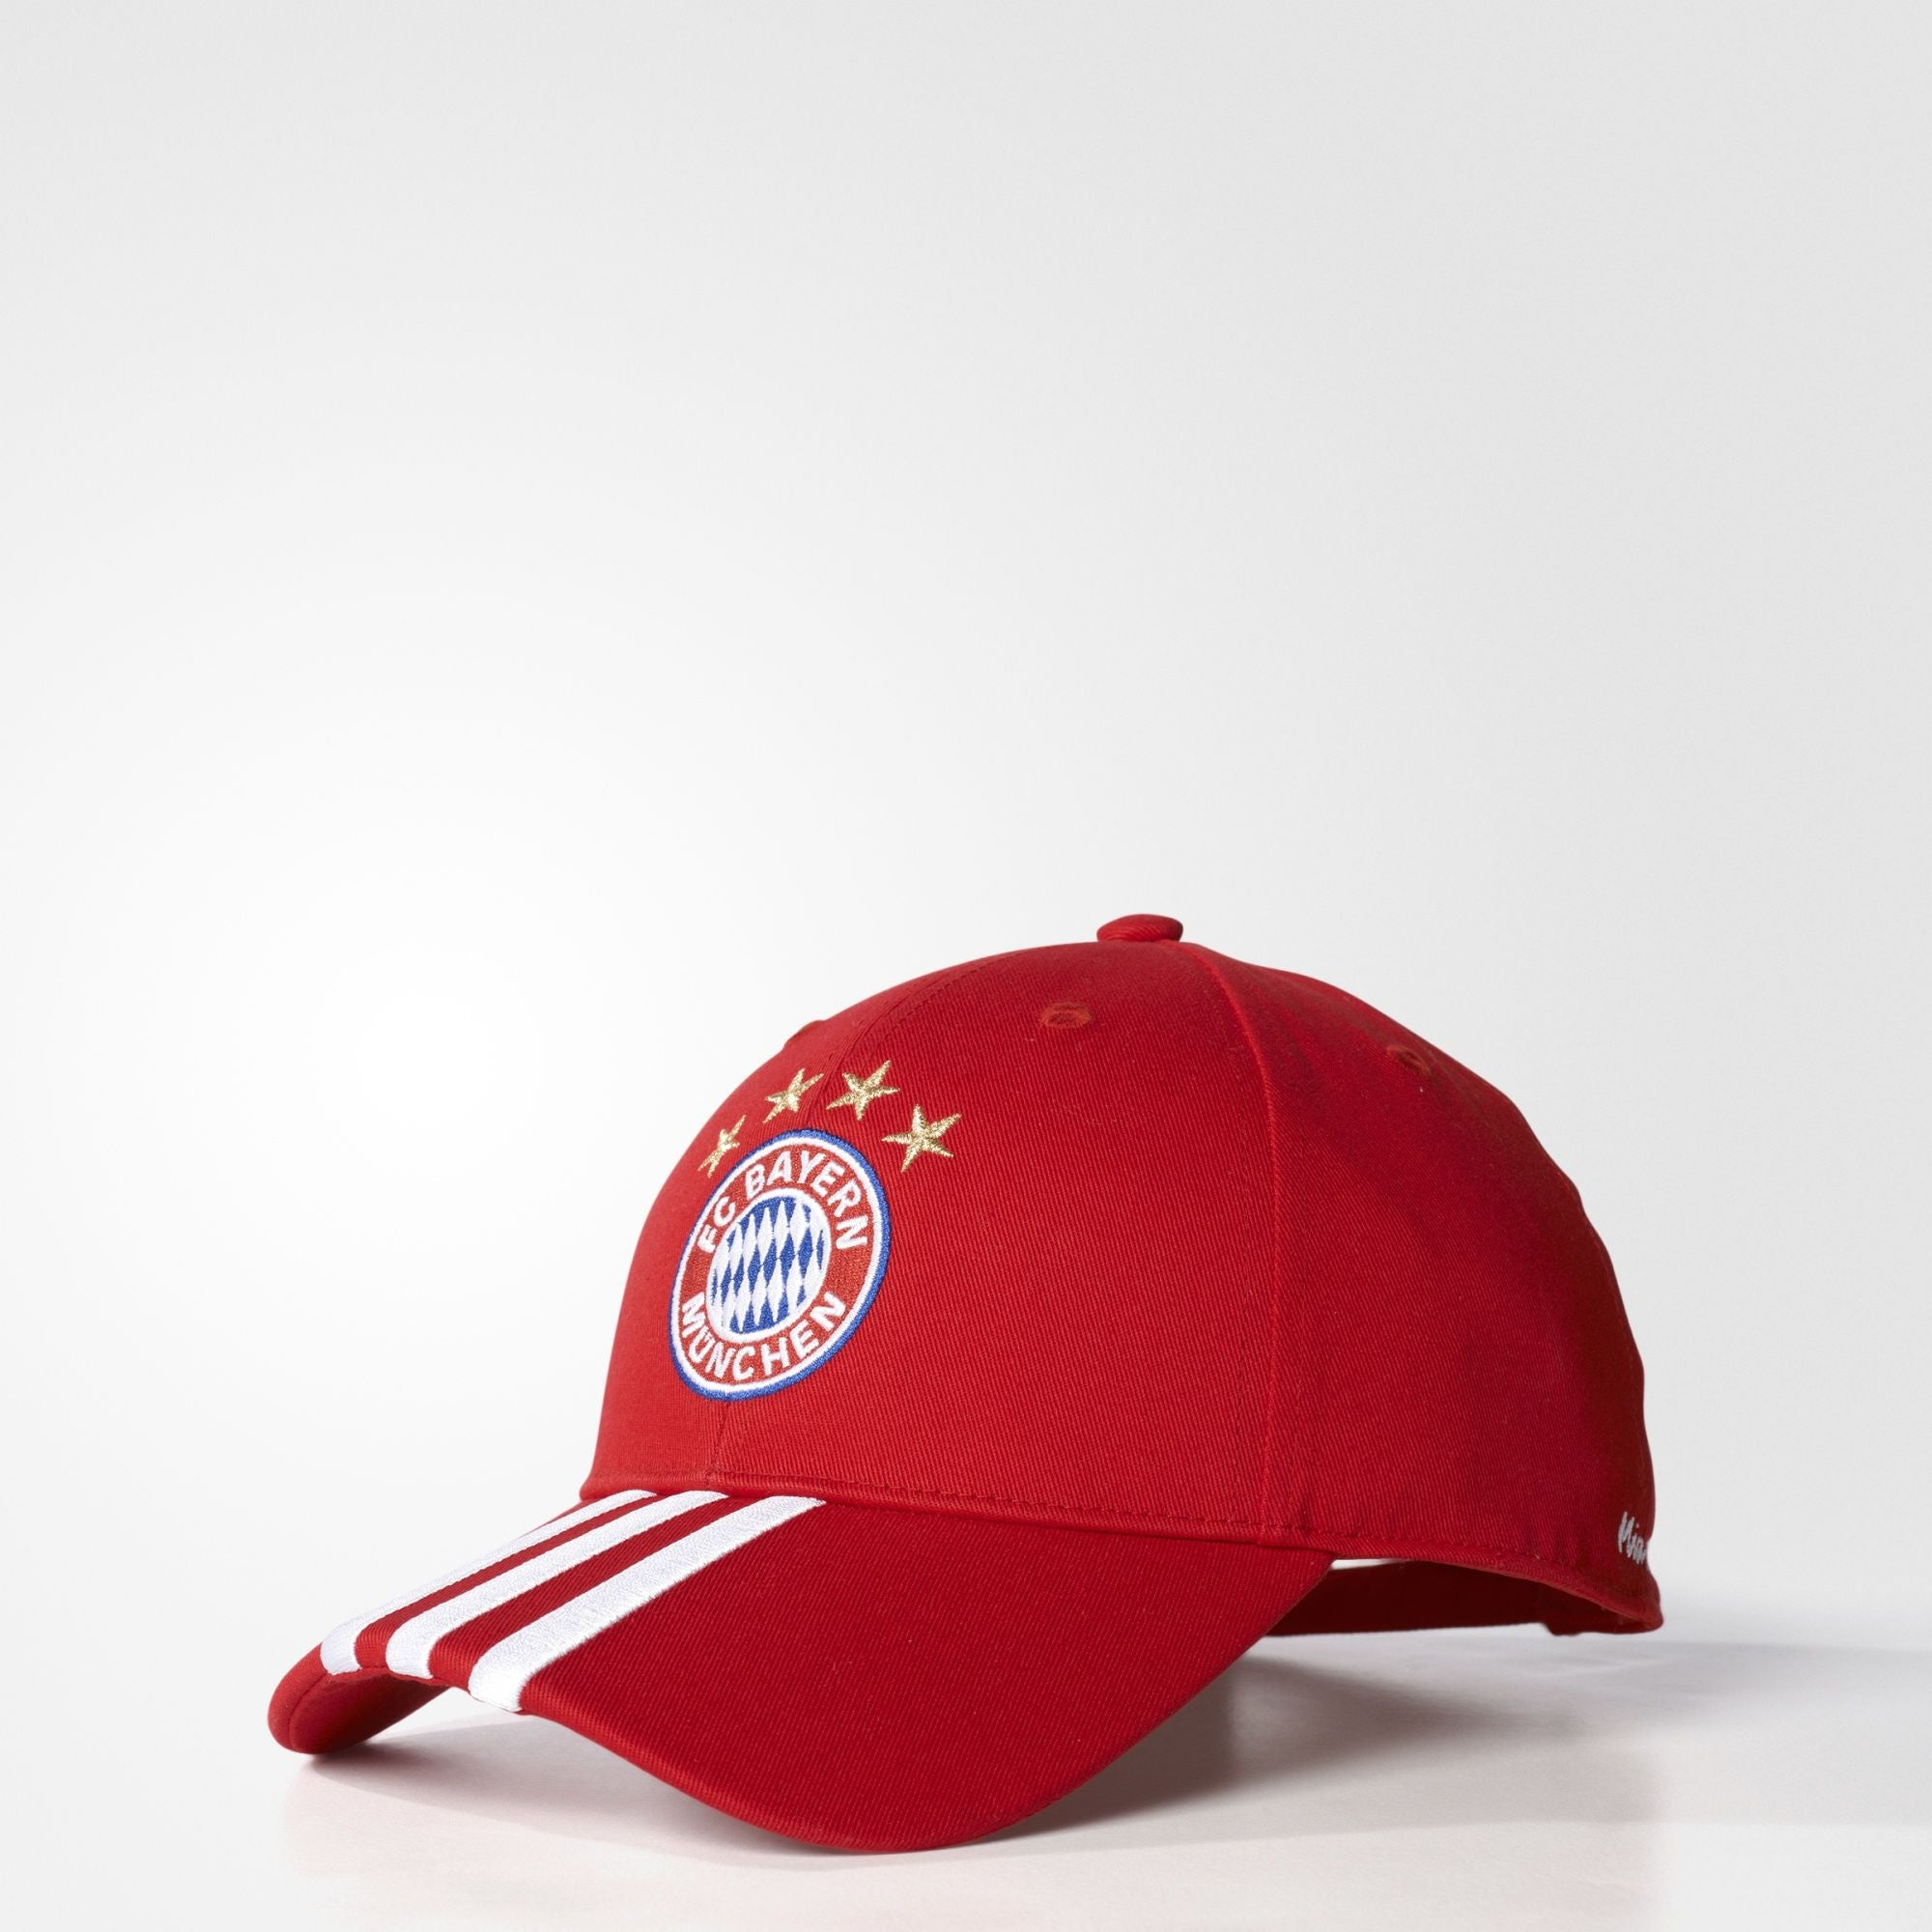 adidas fc bayern munich 3 stripes cap la liga soccer. Black Bedroom Furniture Sets. Home Design Ideas